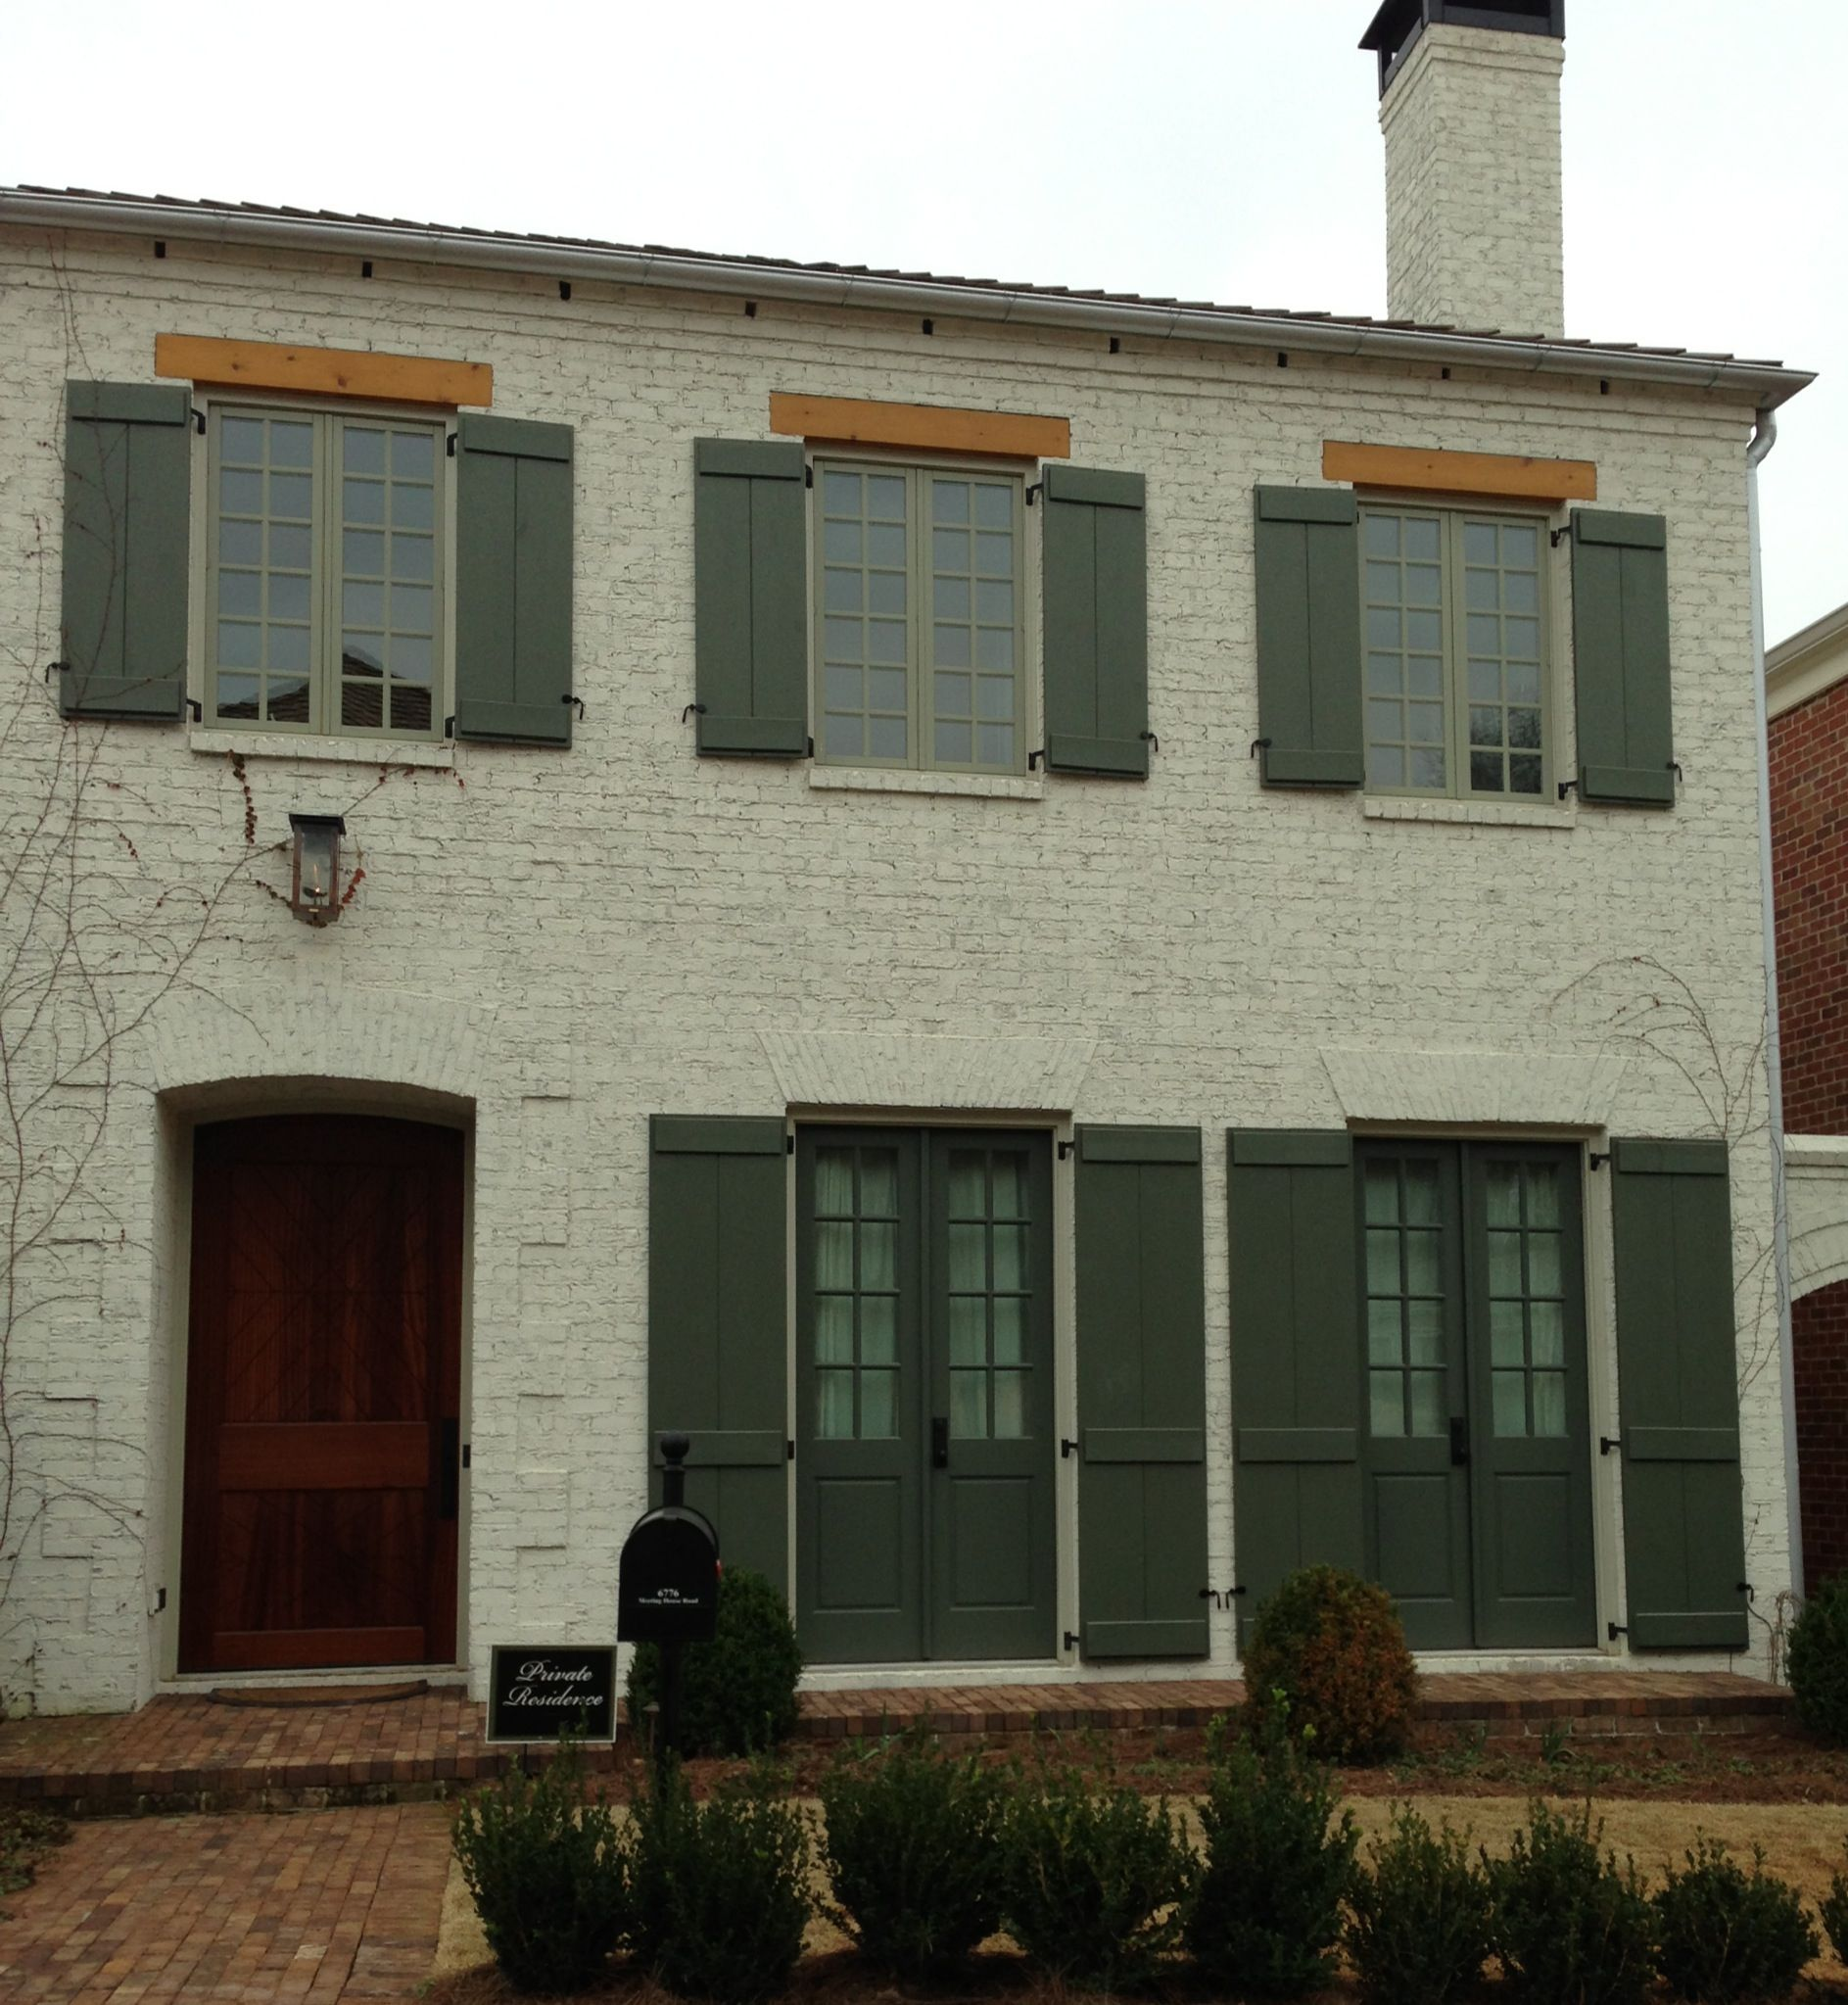 Exterior painted brick   New house ideas   Pinterest   Painted ...